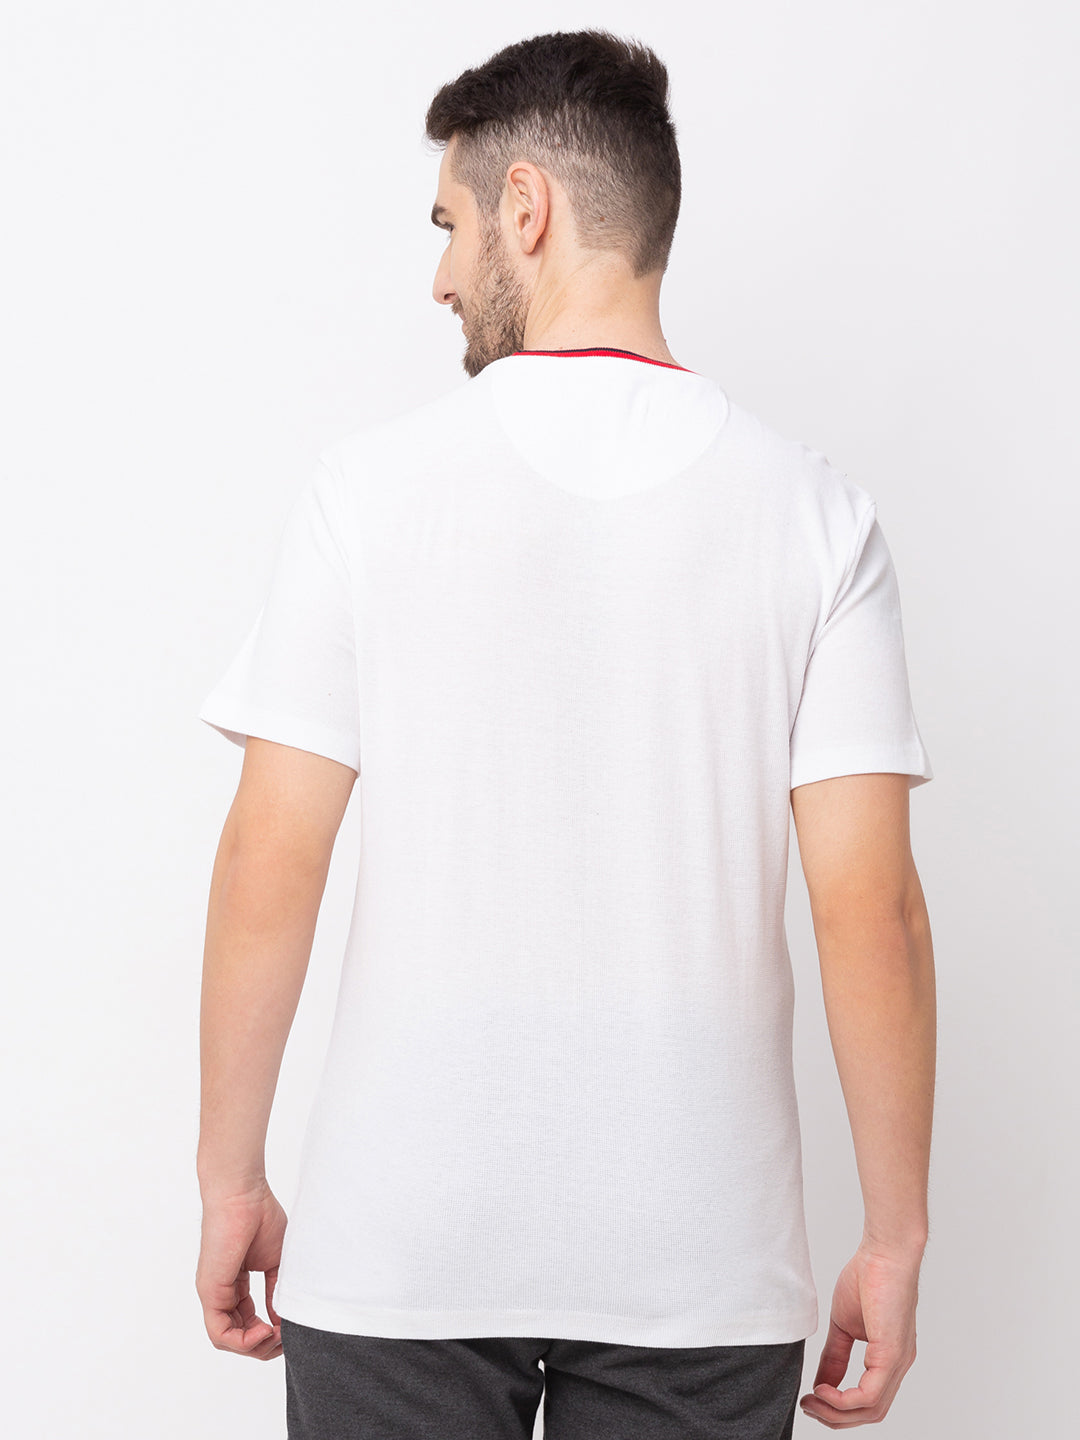 Globus White Solid T-Shirt-3